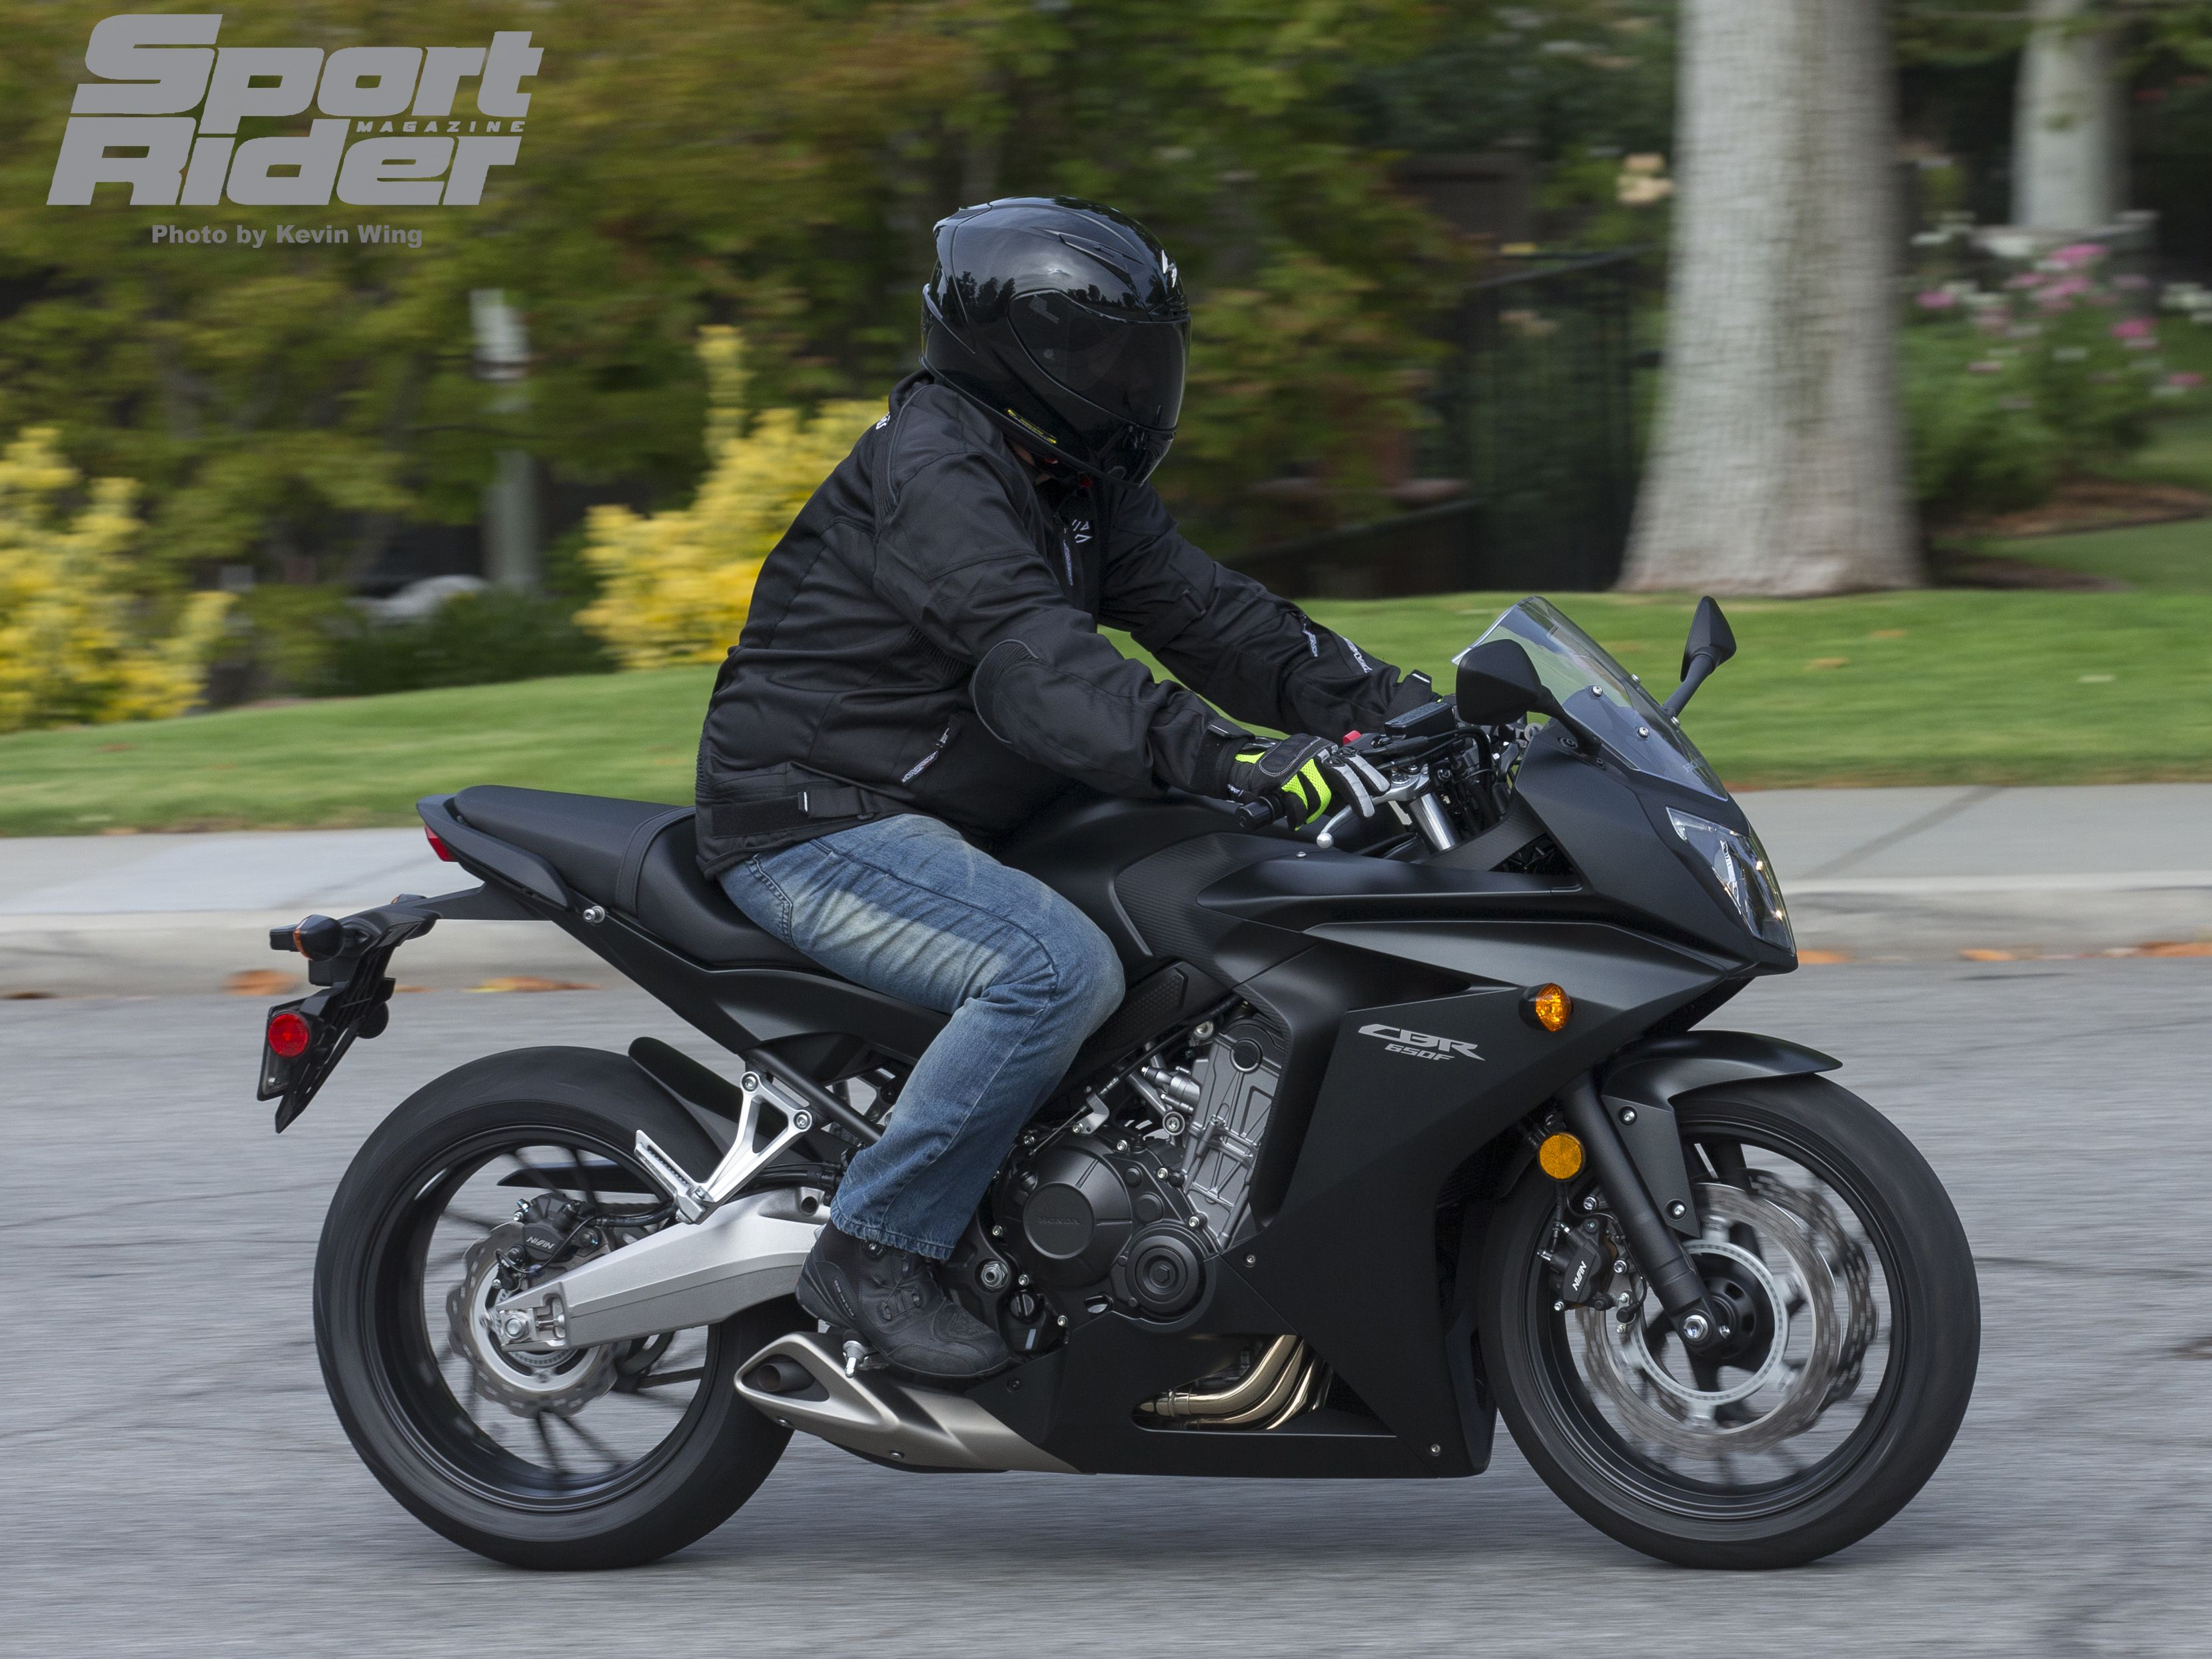 2014 Honda Cbr650f First Ride Review Cycle World